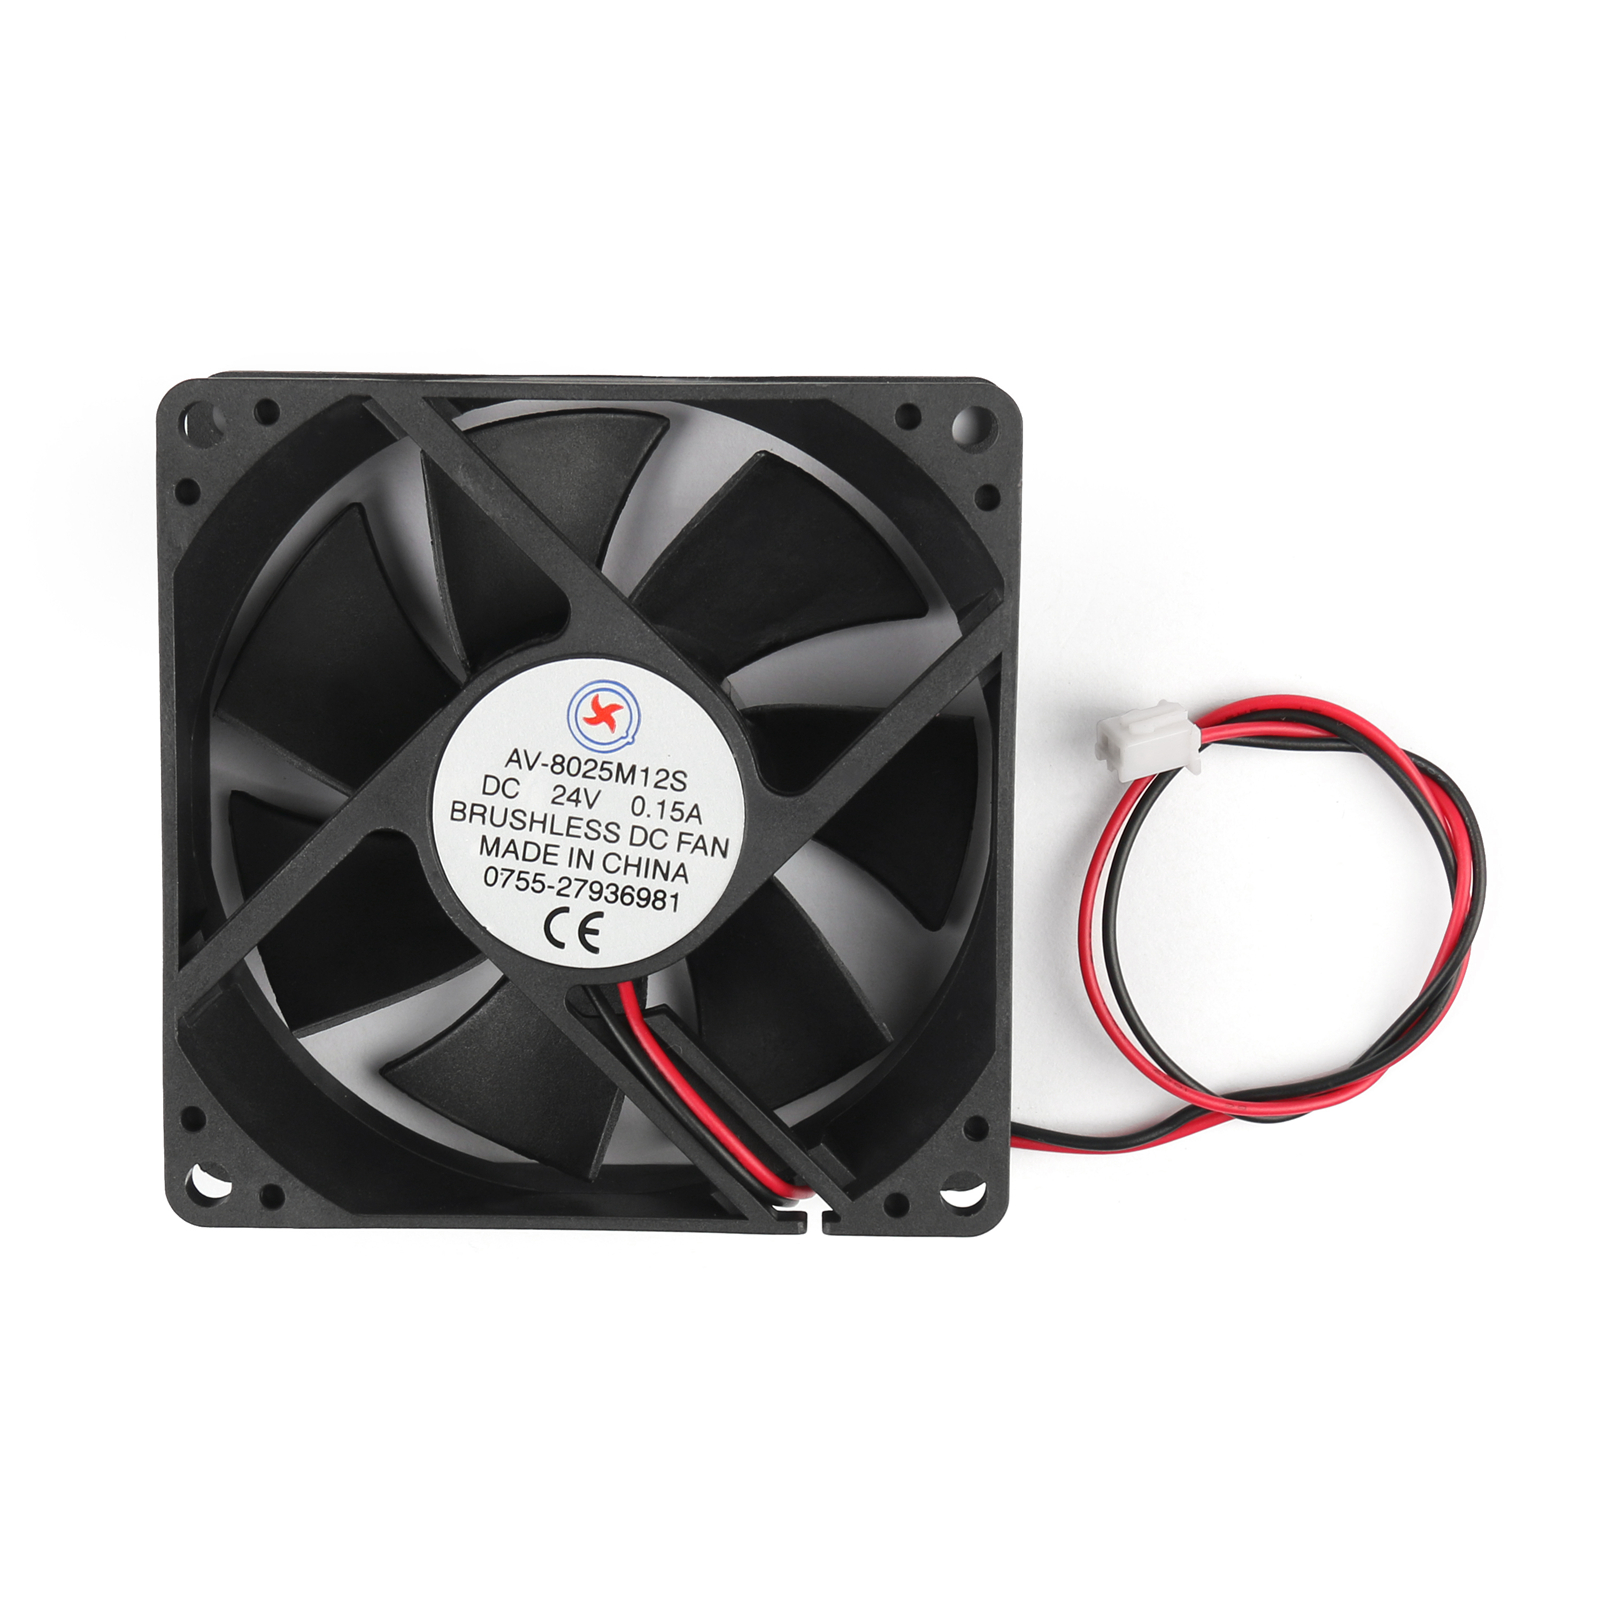 DC Brushless Cooling PC Computer Fan 12V 24V 8025s 80x80x25mm 0.2A 2 ...